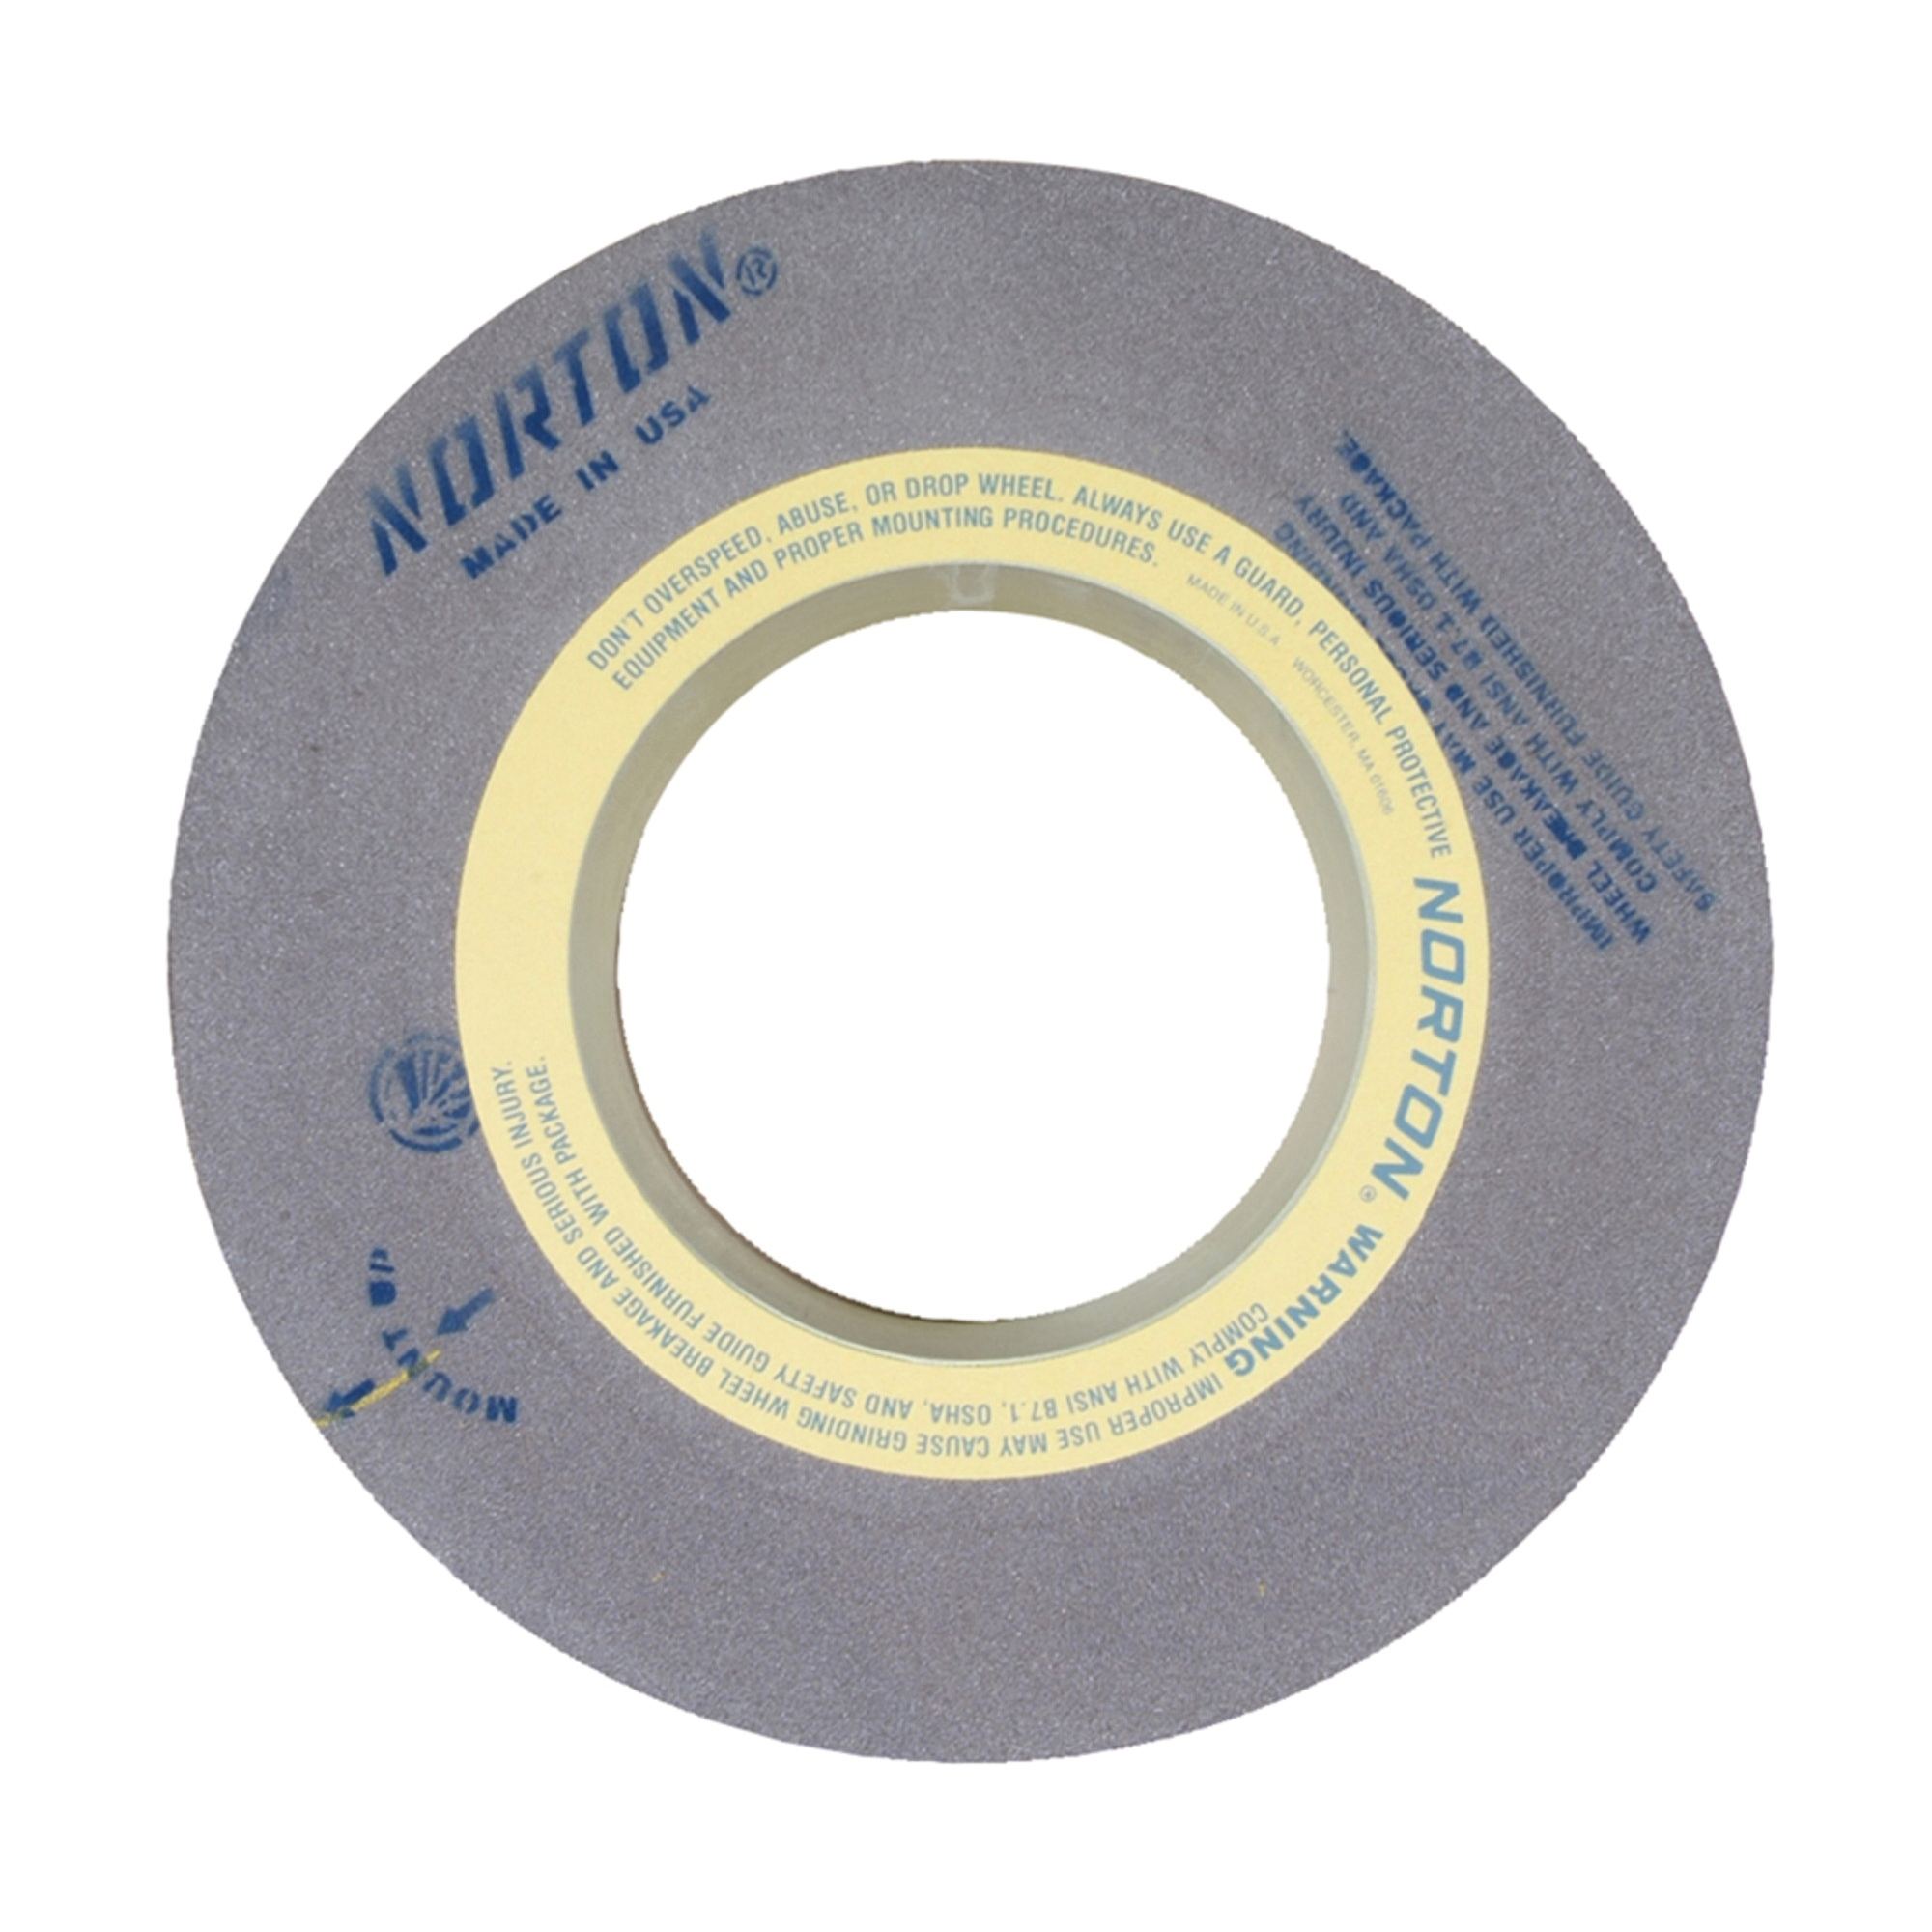 Norton® 69083166771 57A Centerless Grinding Wheel, 24 in Dia x 10 in THK, 12 in Center Hole, 60 Grit, Aluminum Oxide Abrasive